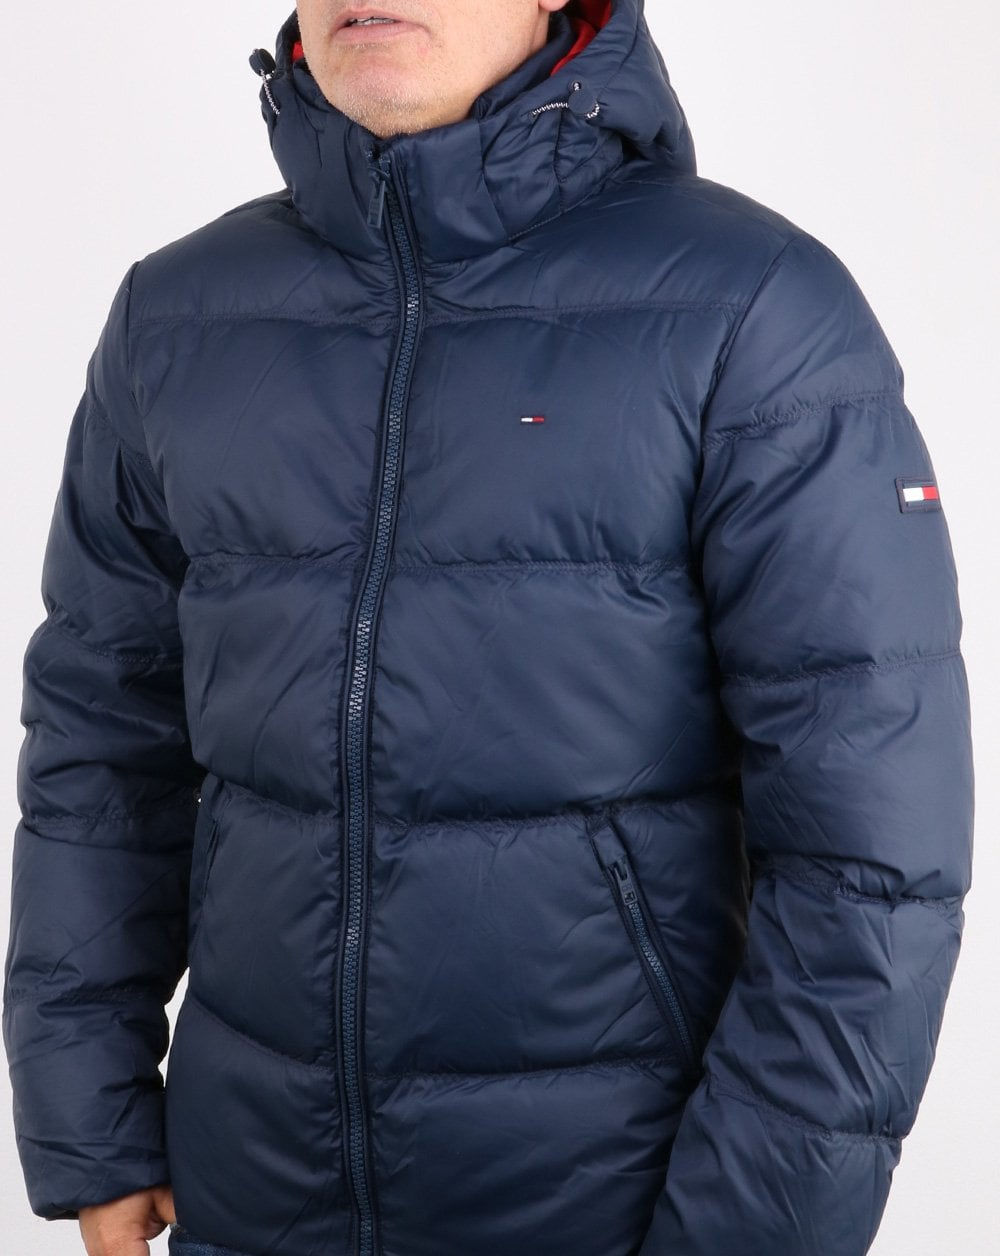 2520b70d37 Tommy Hilfiger Down Jacket Navy